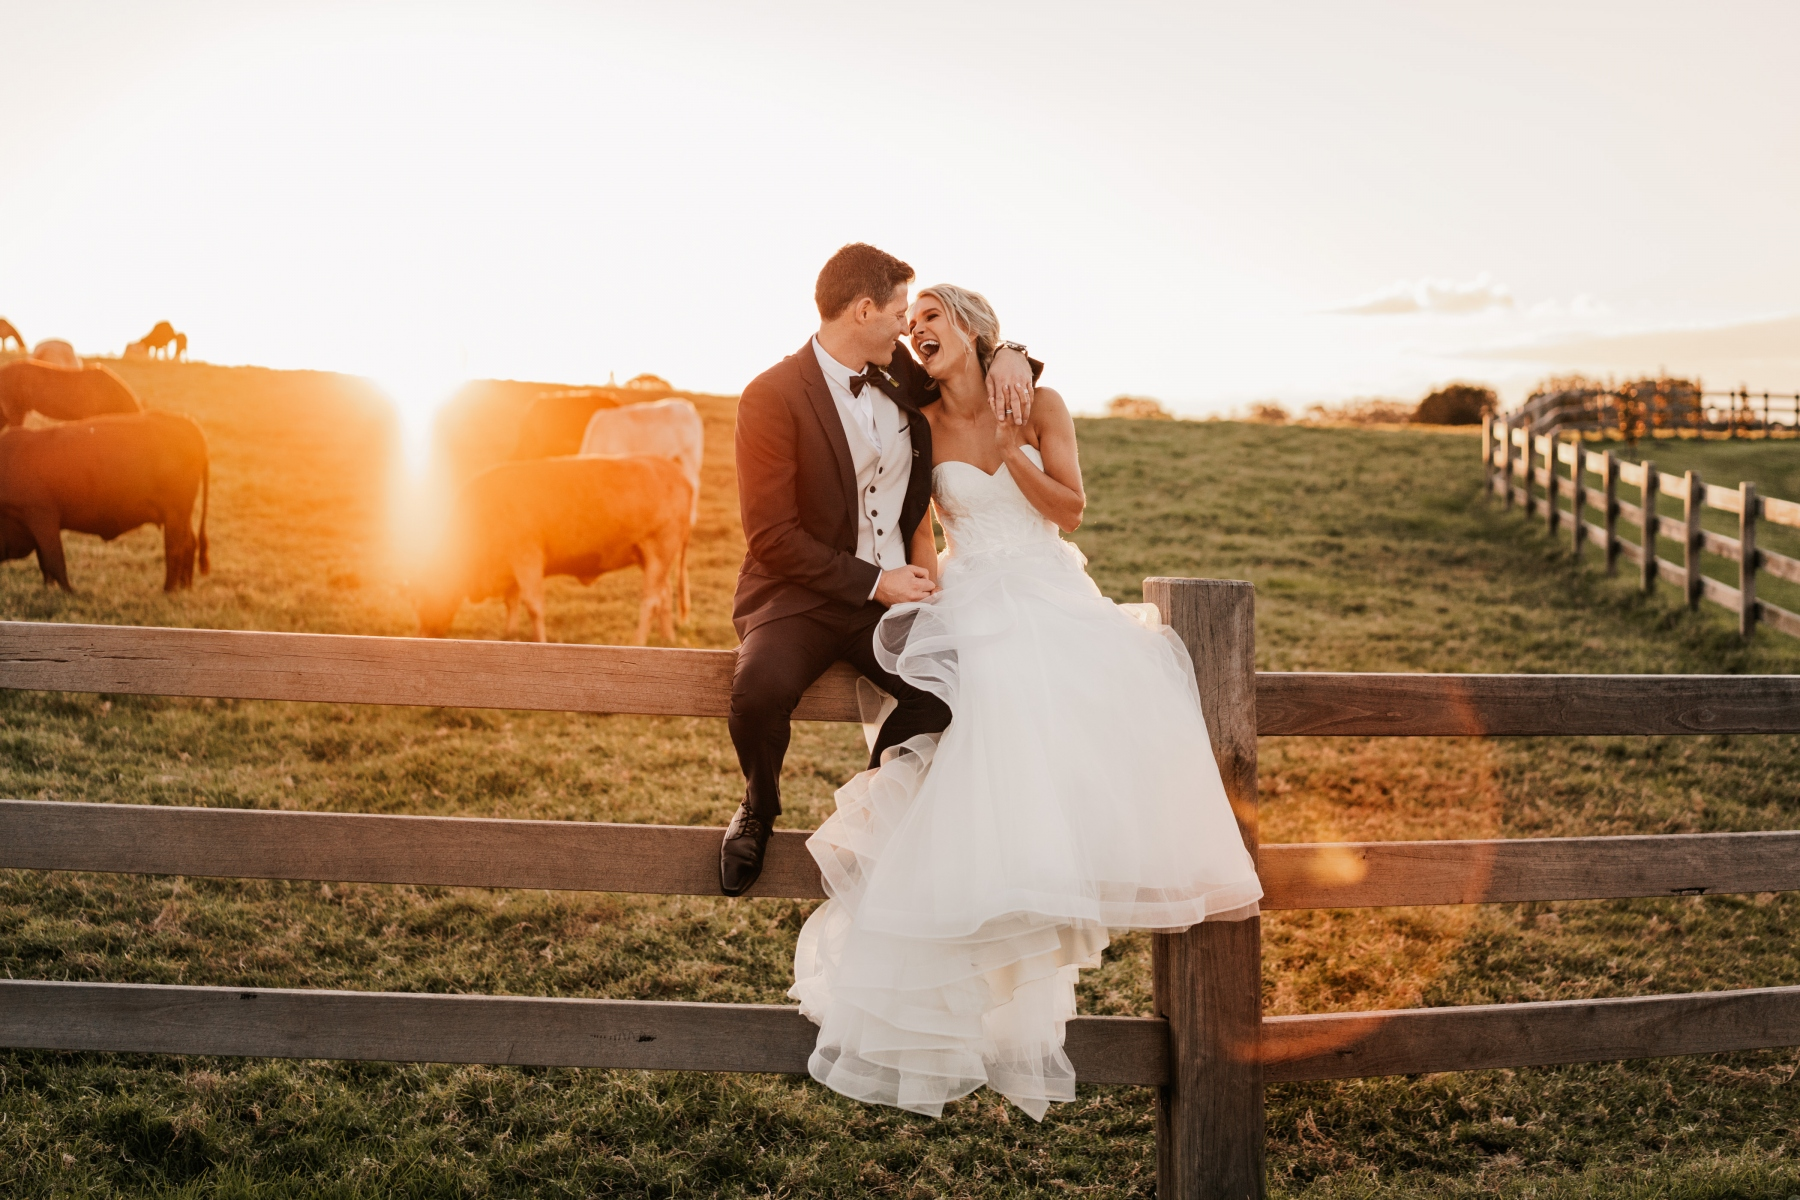 Sunshine-Coast-Wedding-Photographer-Luke-Middlemiss-Photography-92